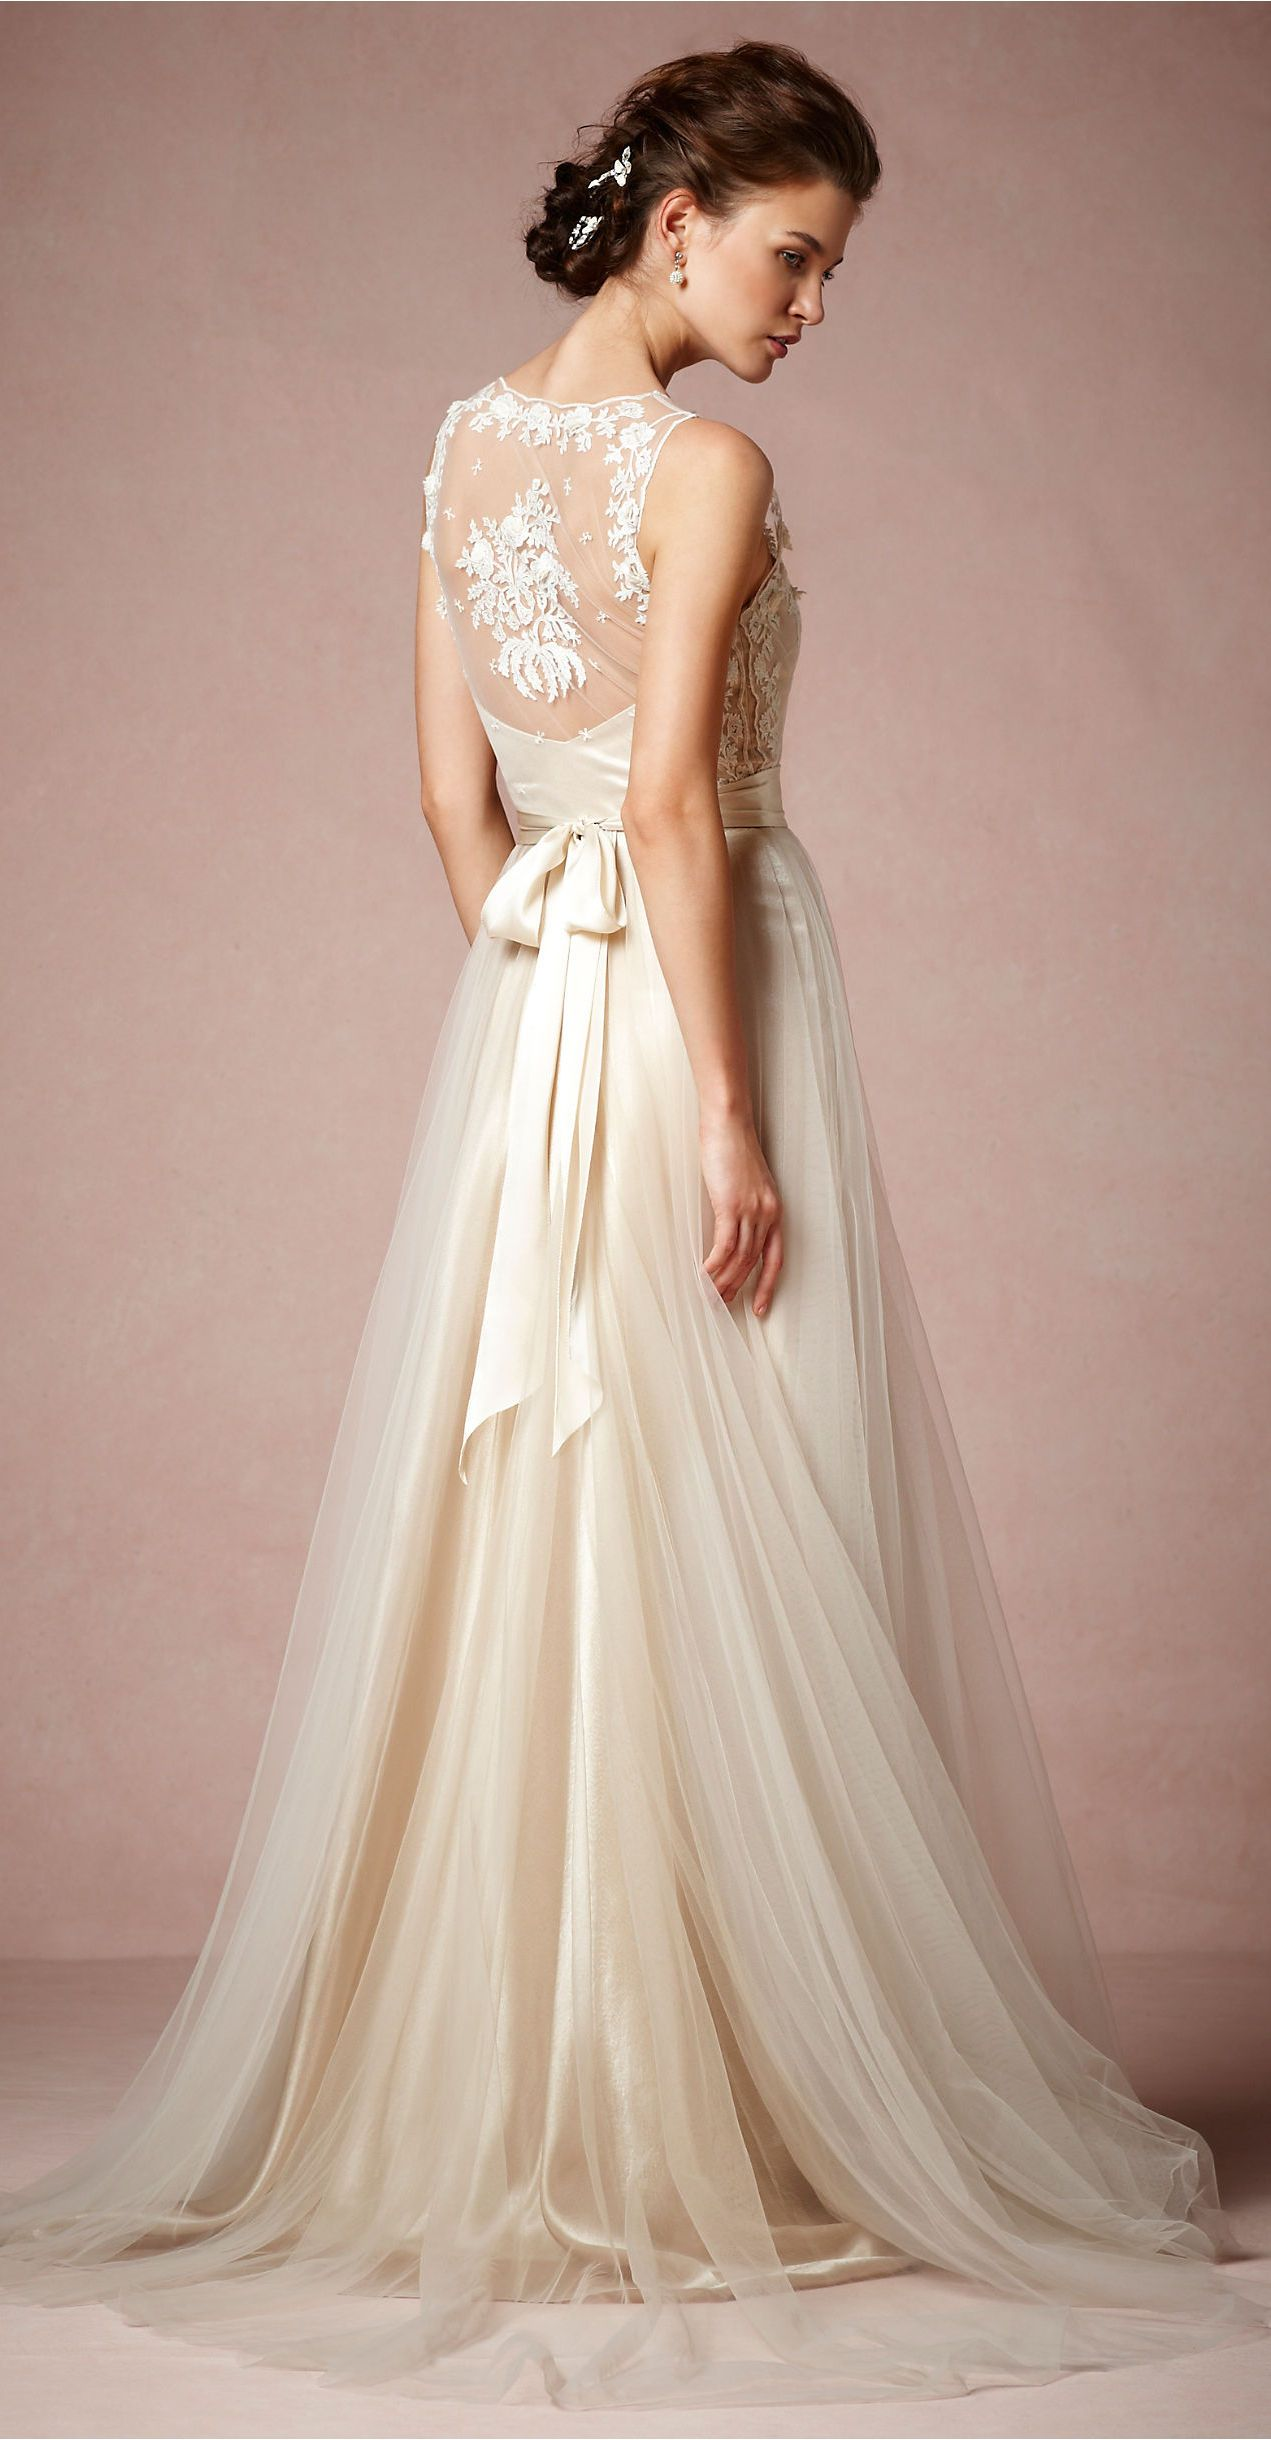 Catherine Deane Rose Embroidered Ivory Tulle and Silk Wedding